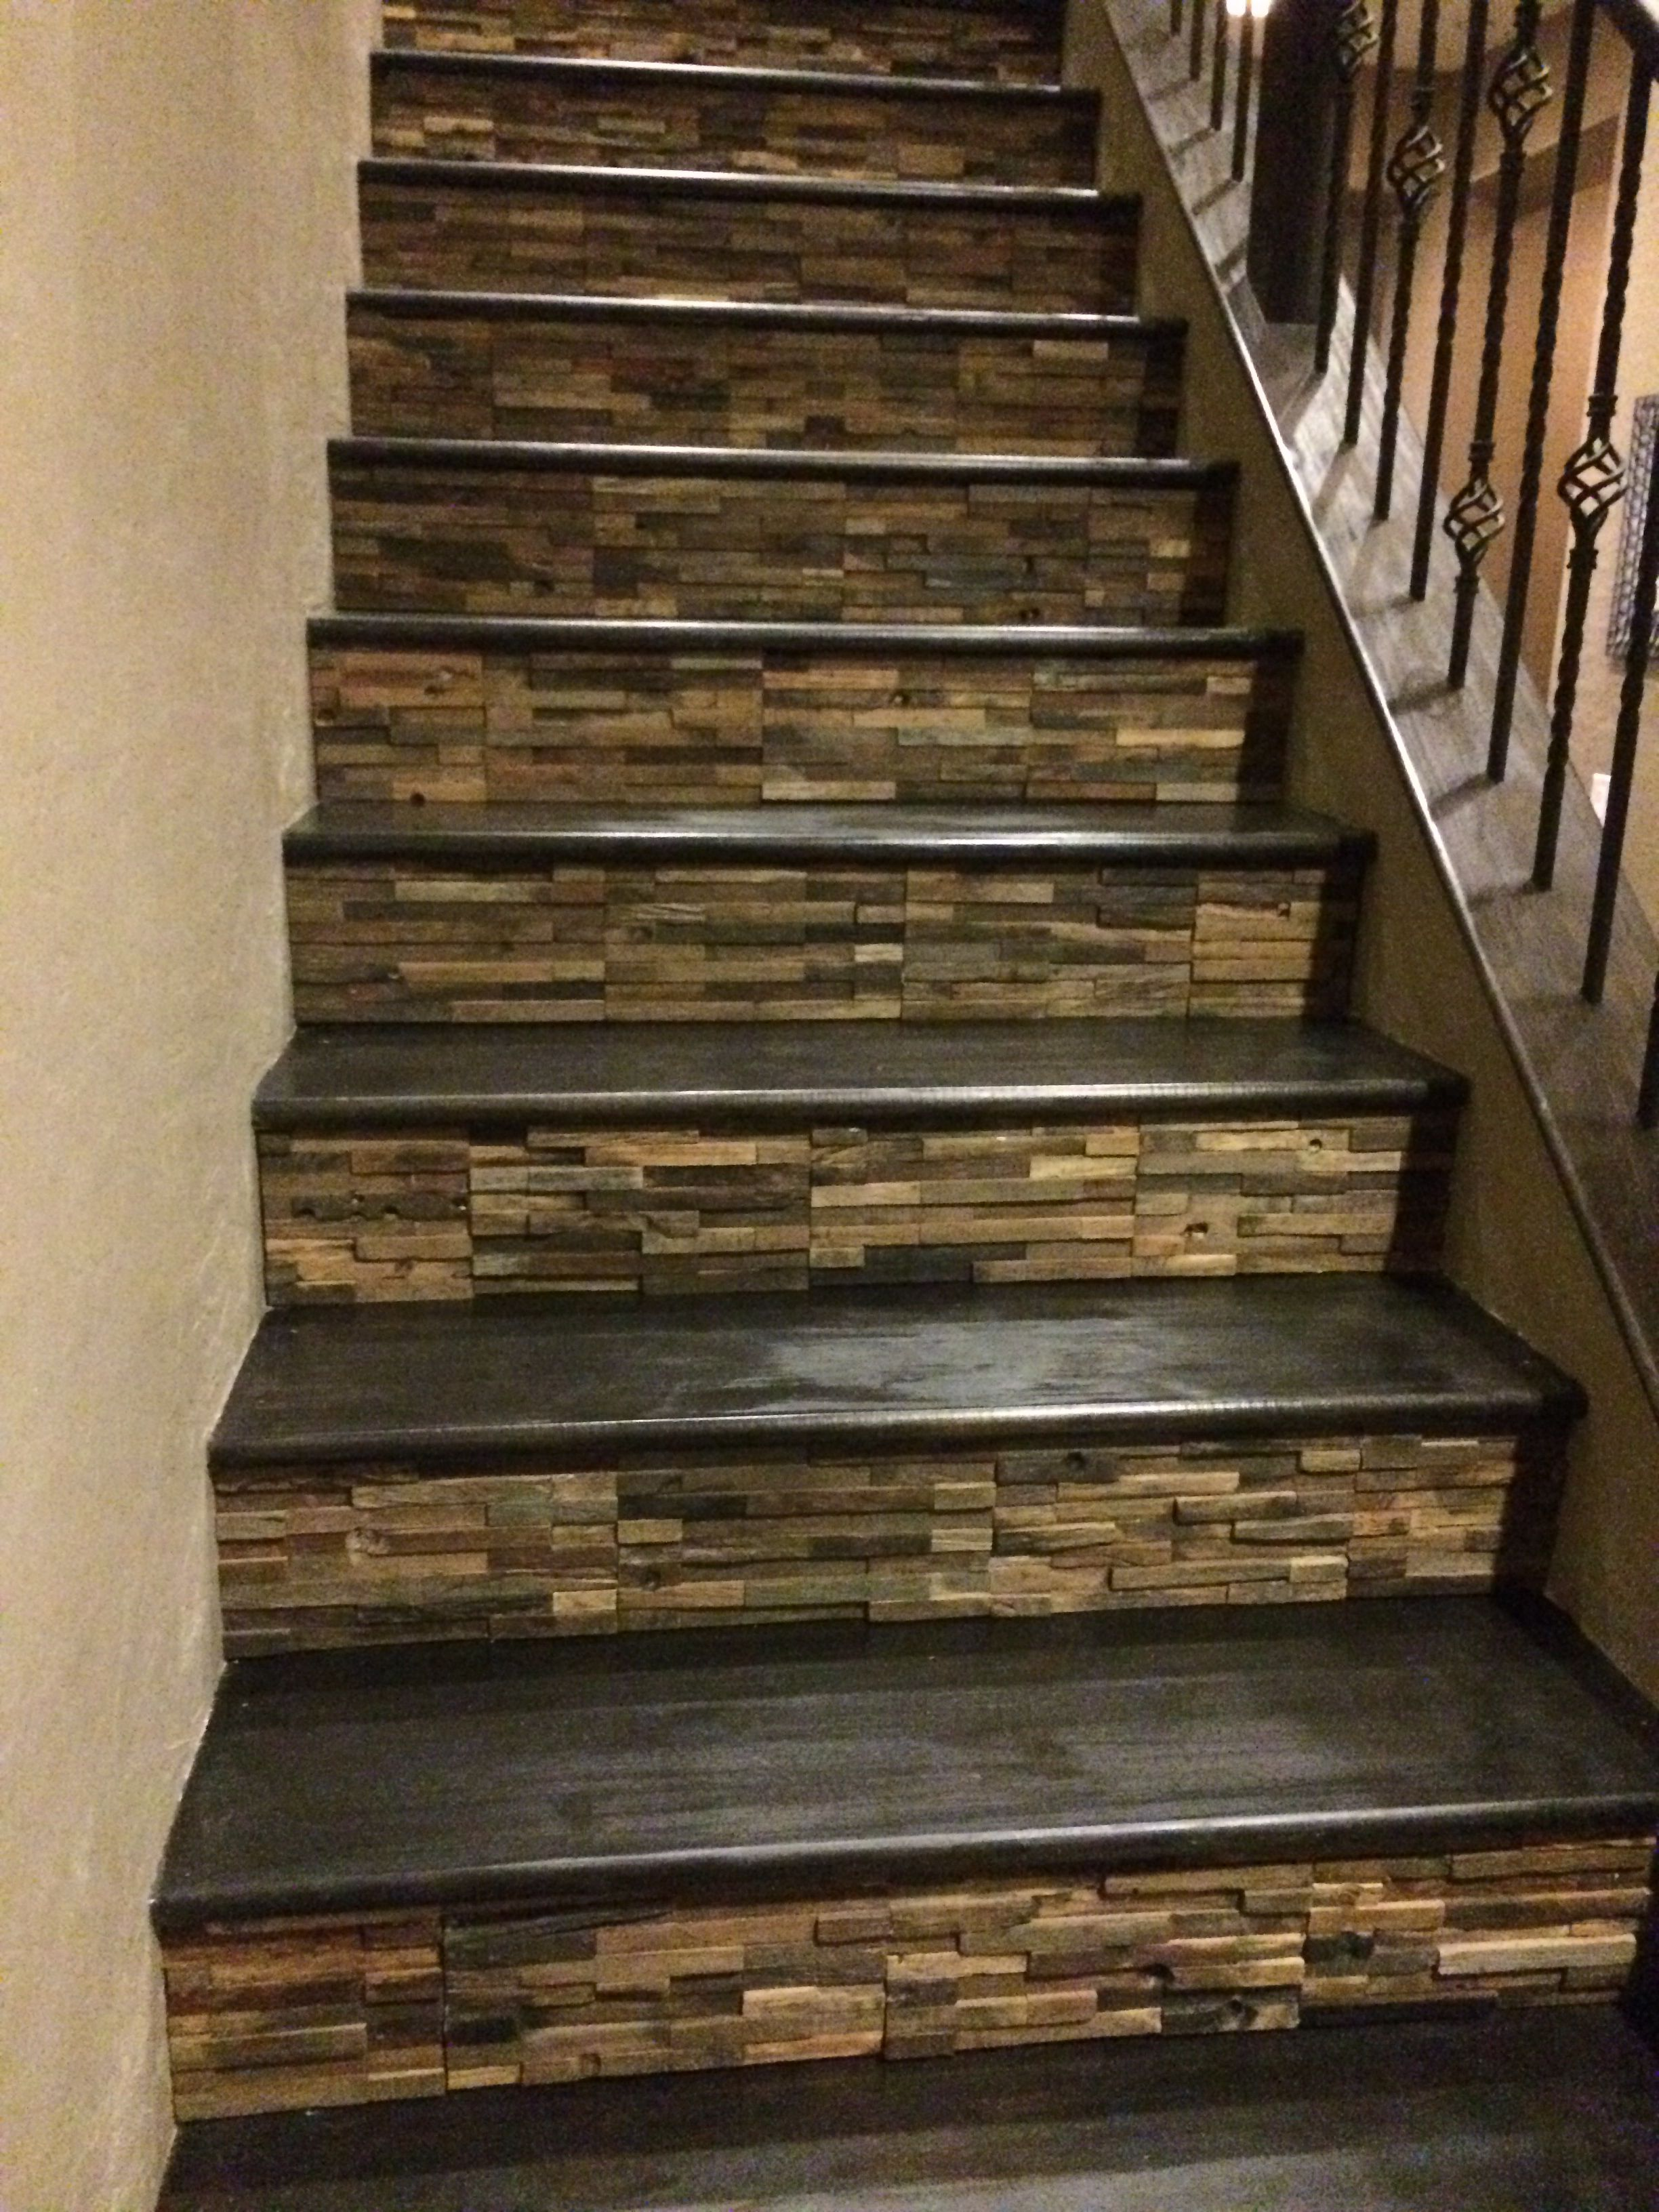 Best From Carpeting To Stained Wood With Custom Risers Tiled Staircase Stairs Design Staircase 400 x 300